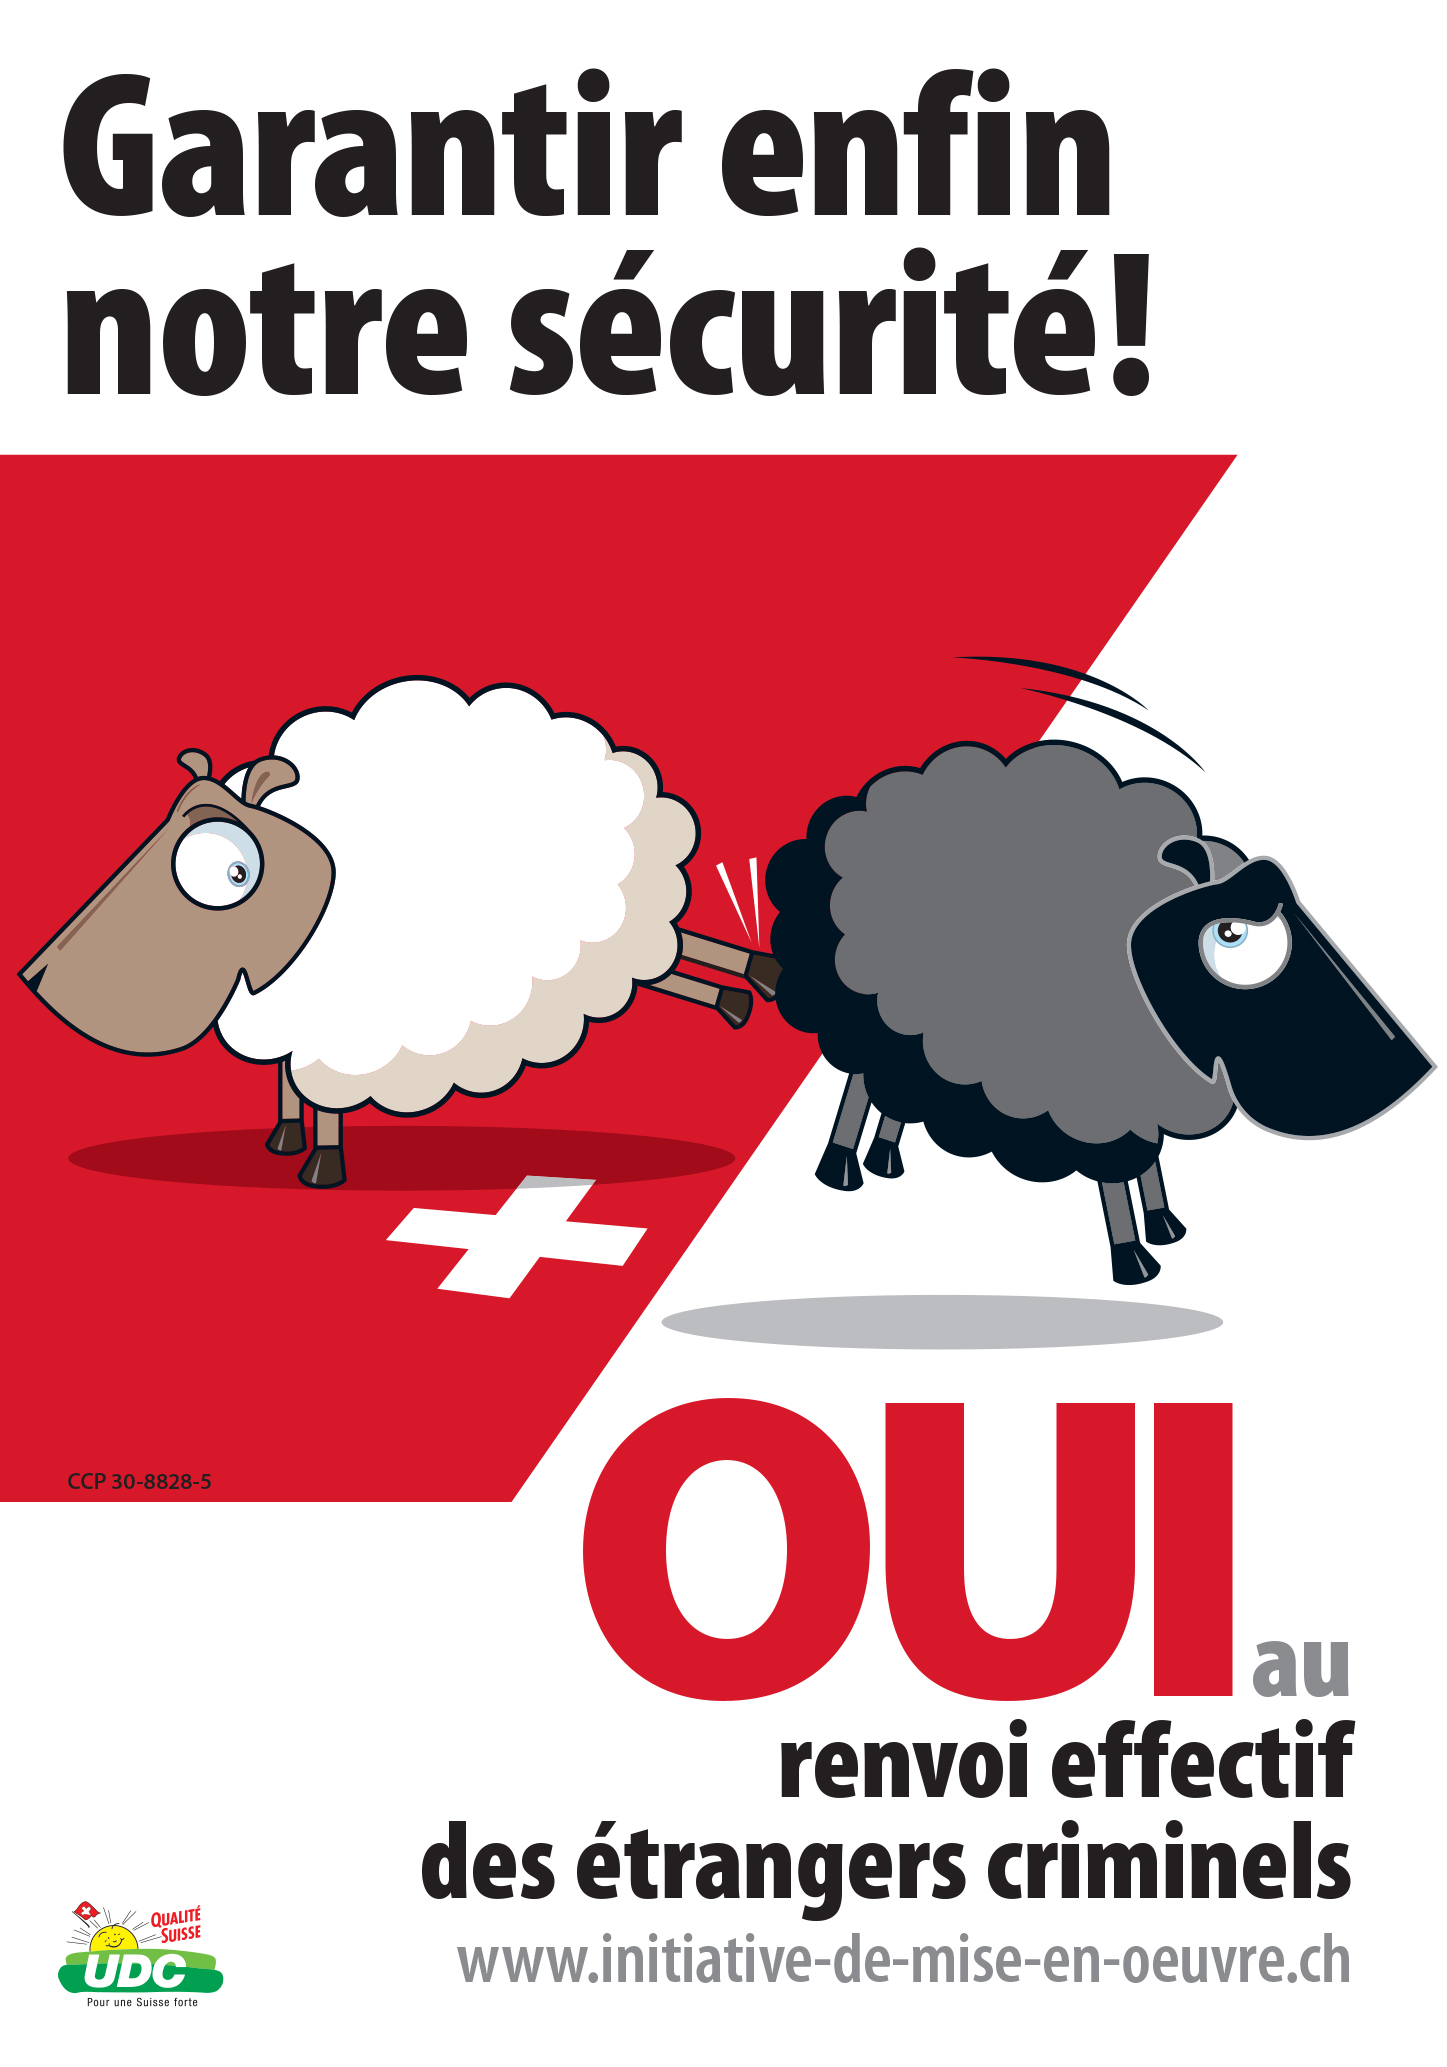 Switzerland's largest political party insists on depicting ...